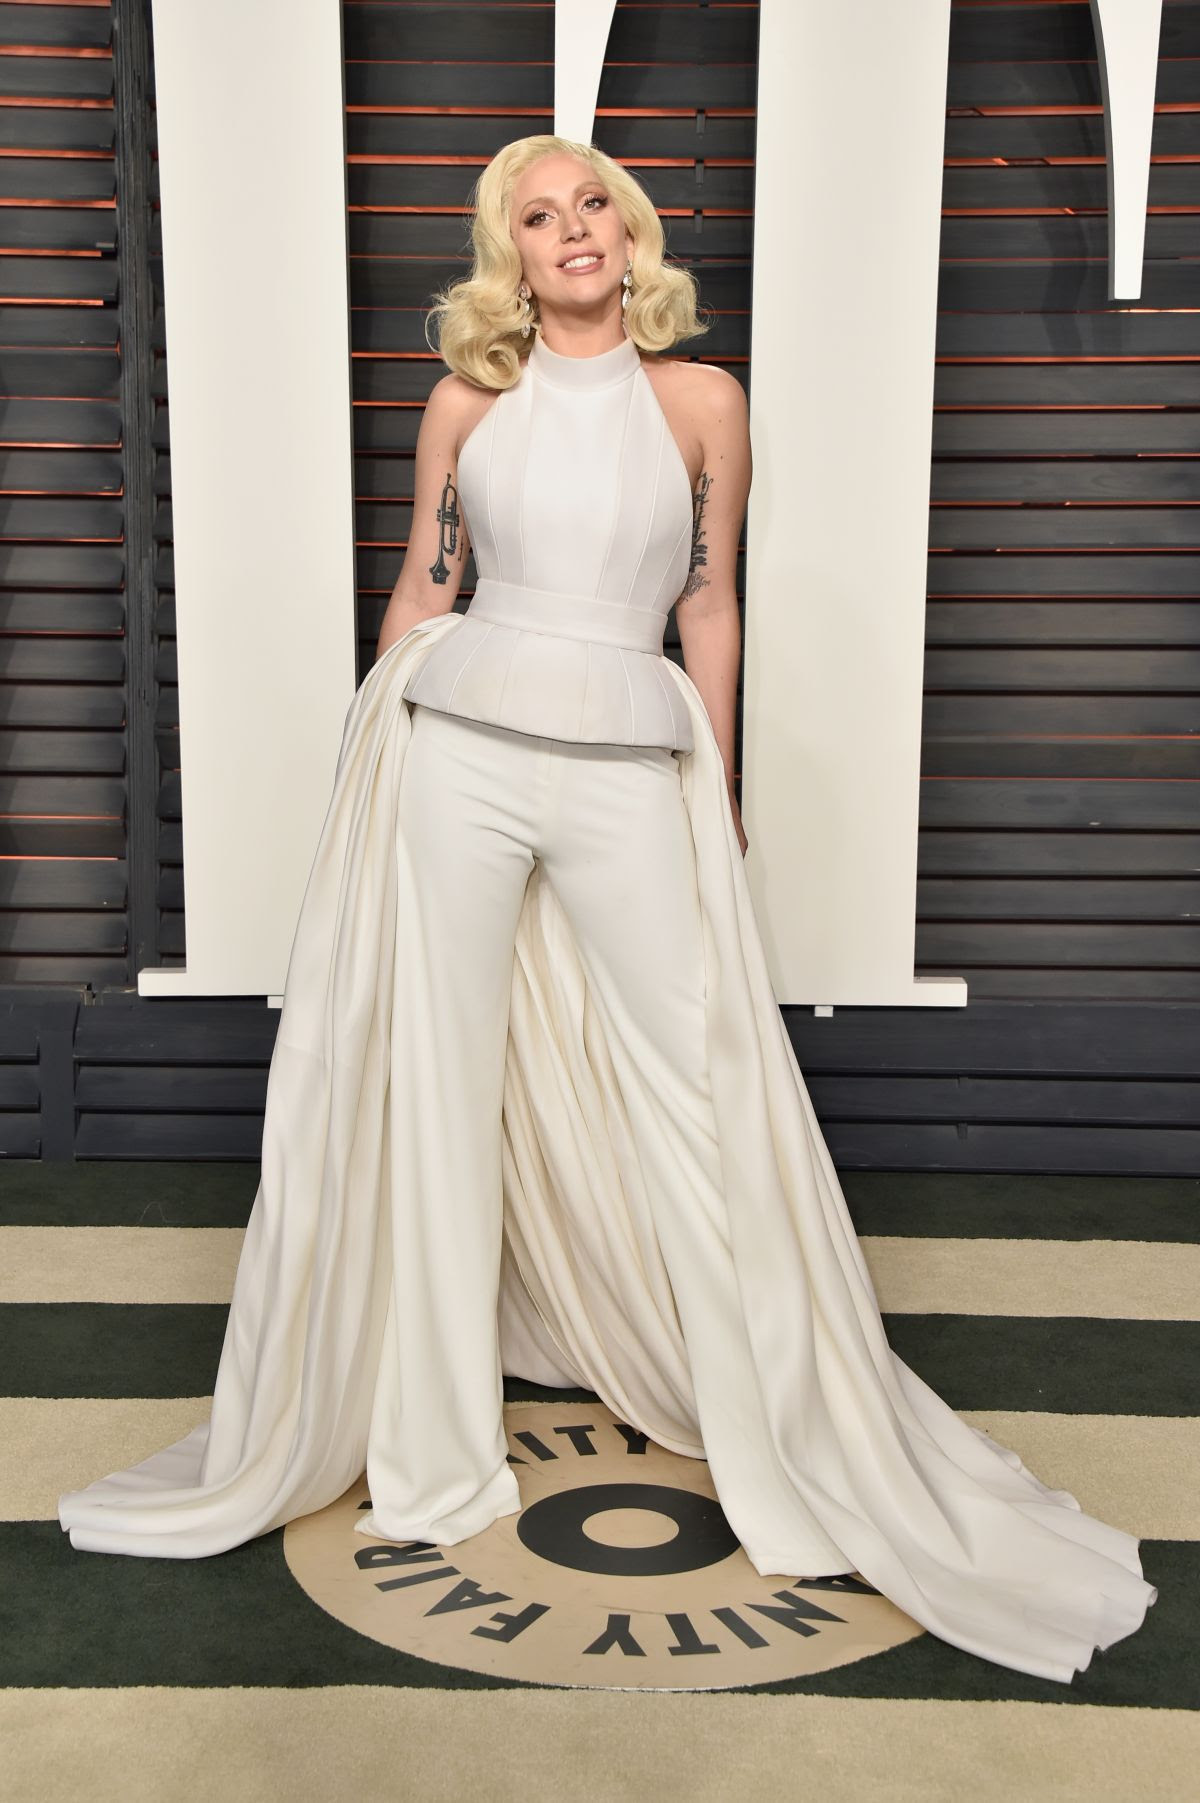 LADY GAGA at Vanity Fair Oscar 2016 Party in Beverly Hills 02/28/2016